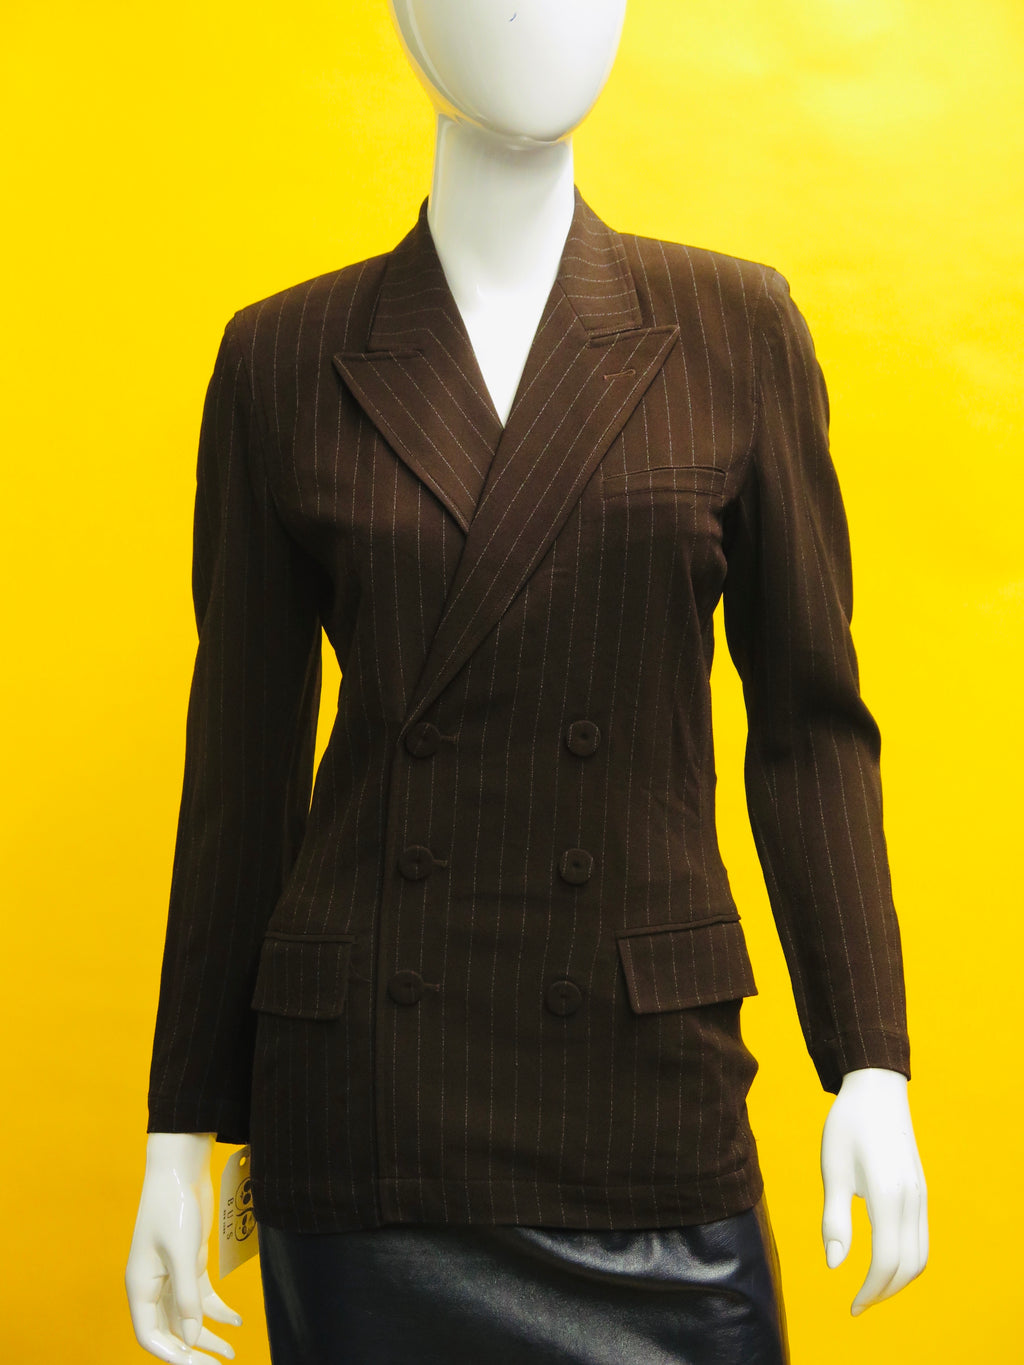 Jean Paul Gaultier Classique Pinstriped Jacket Pullover